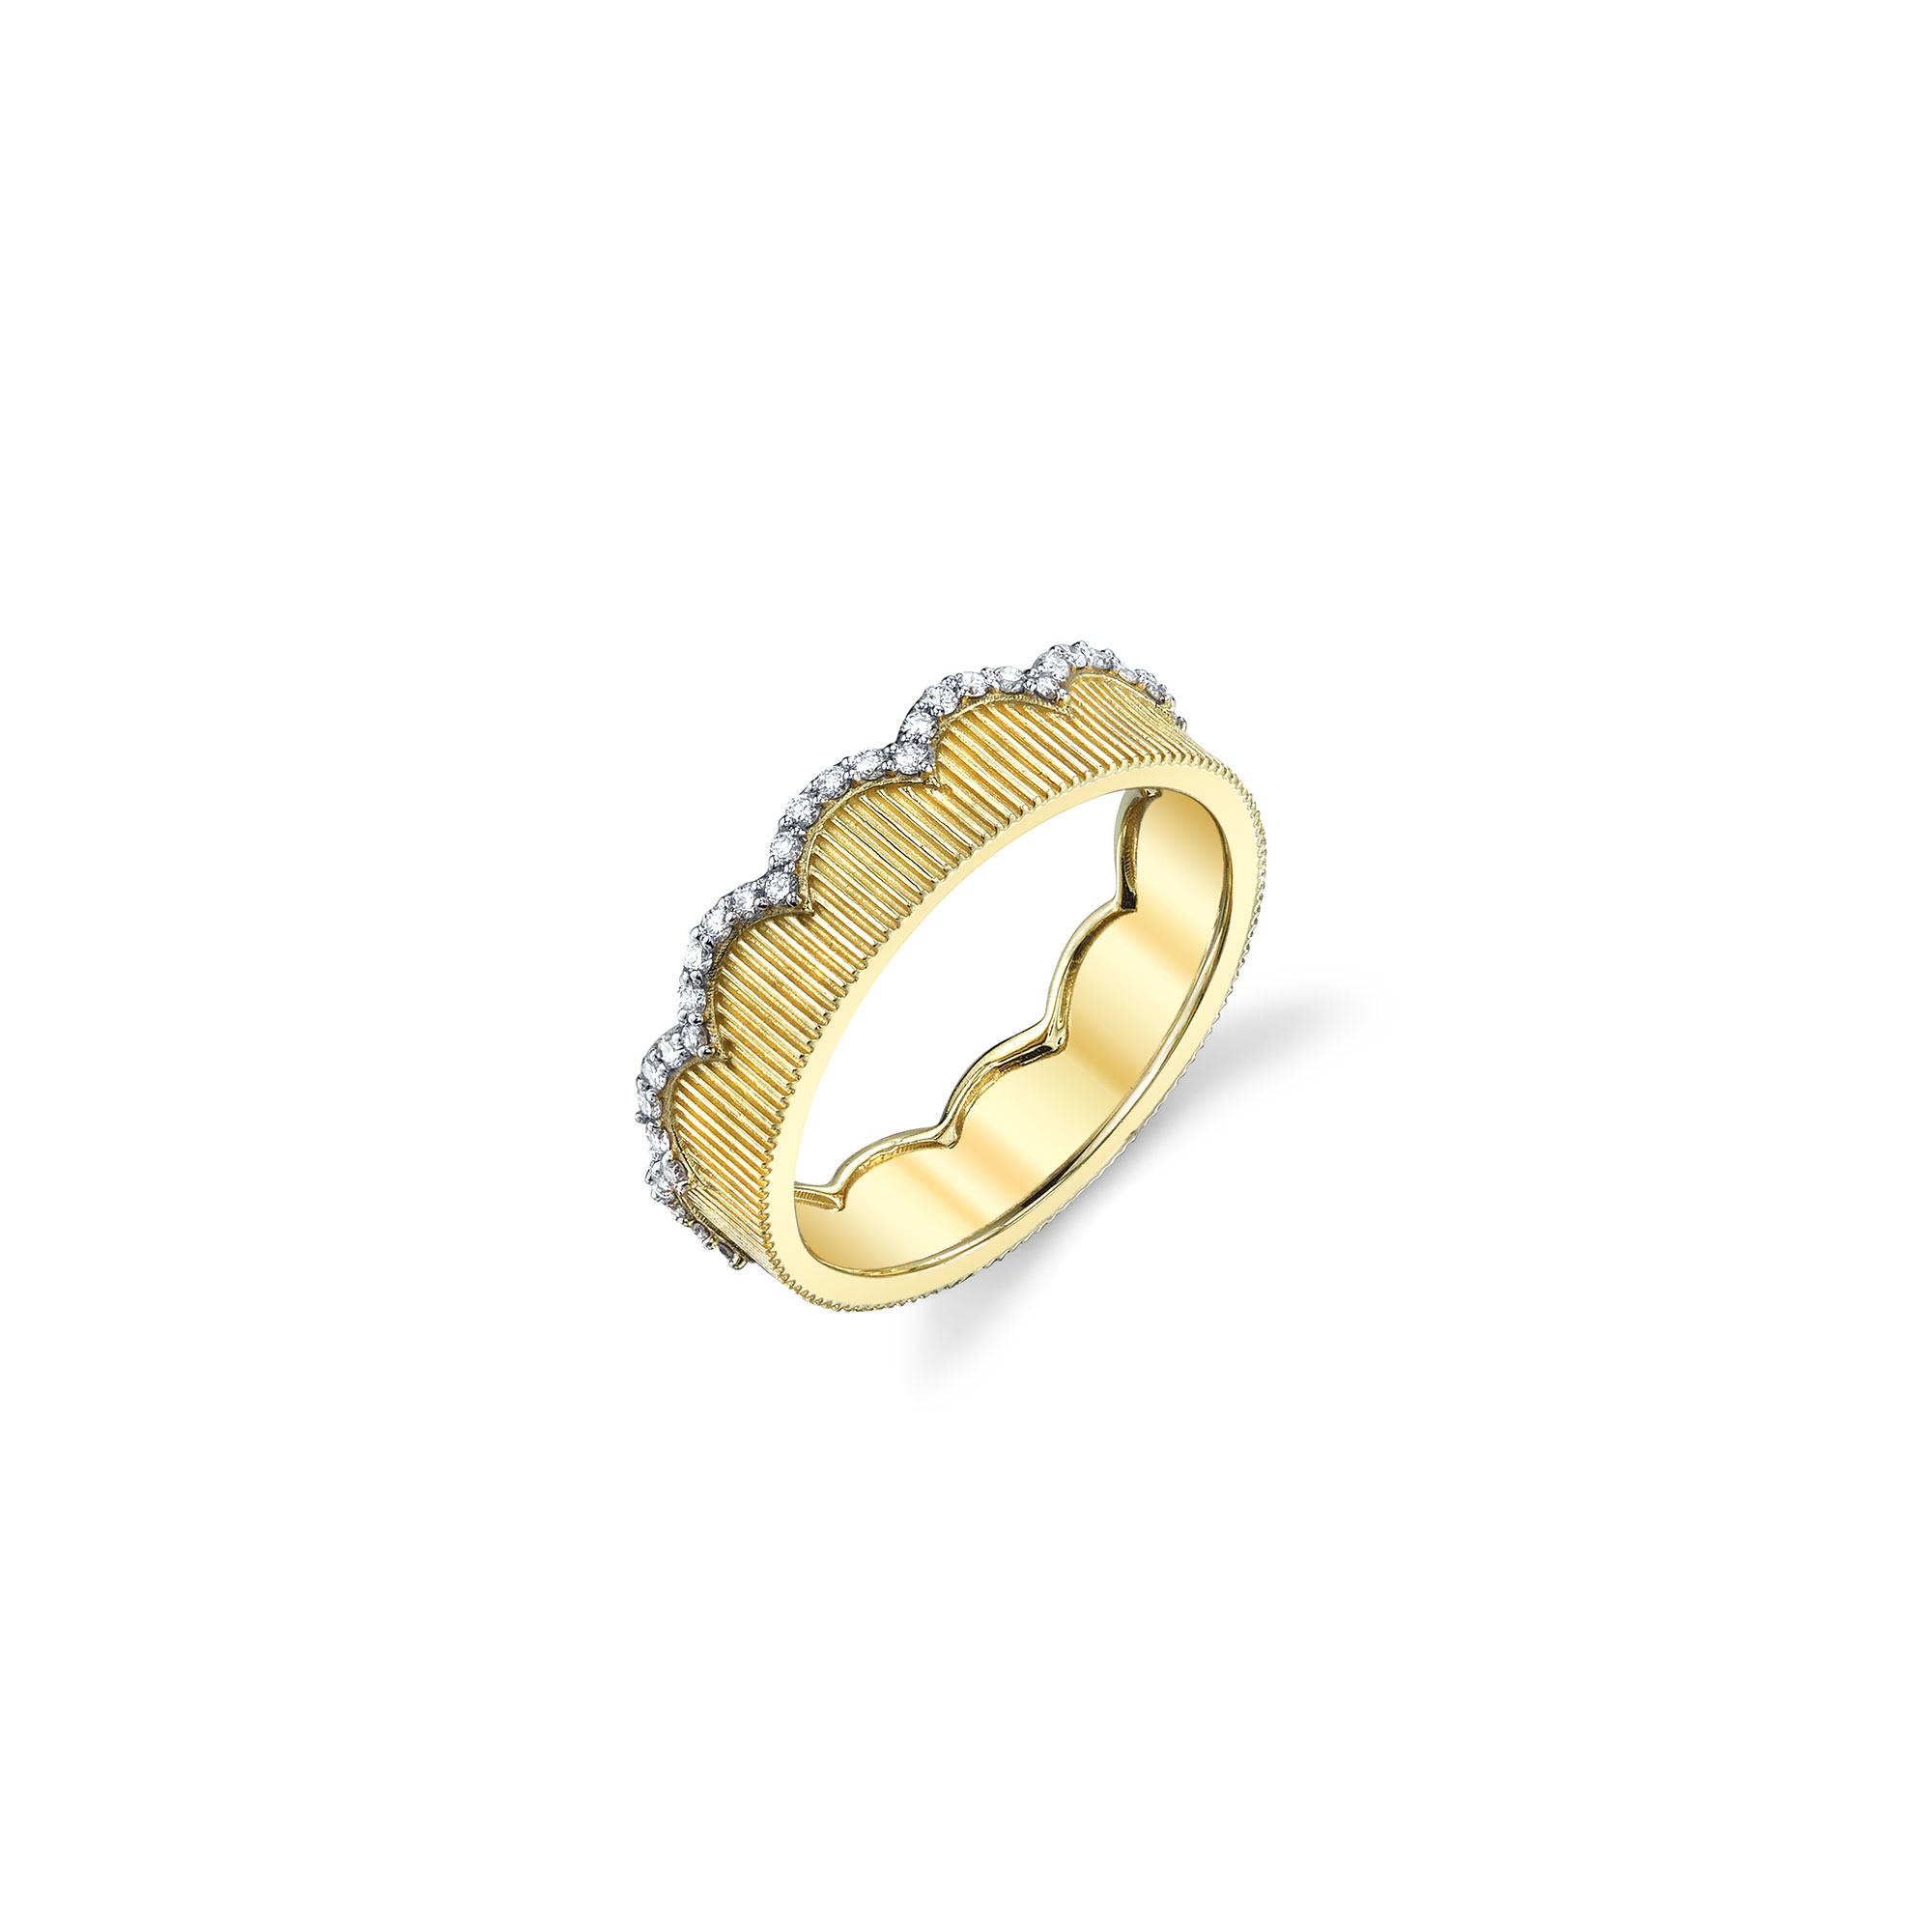 Sloane Street 18K Yellow Gold .60cts  Diamond Gold Ring with Stones R003C-WDCB-Y